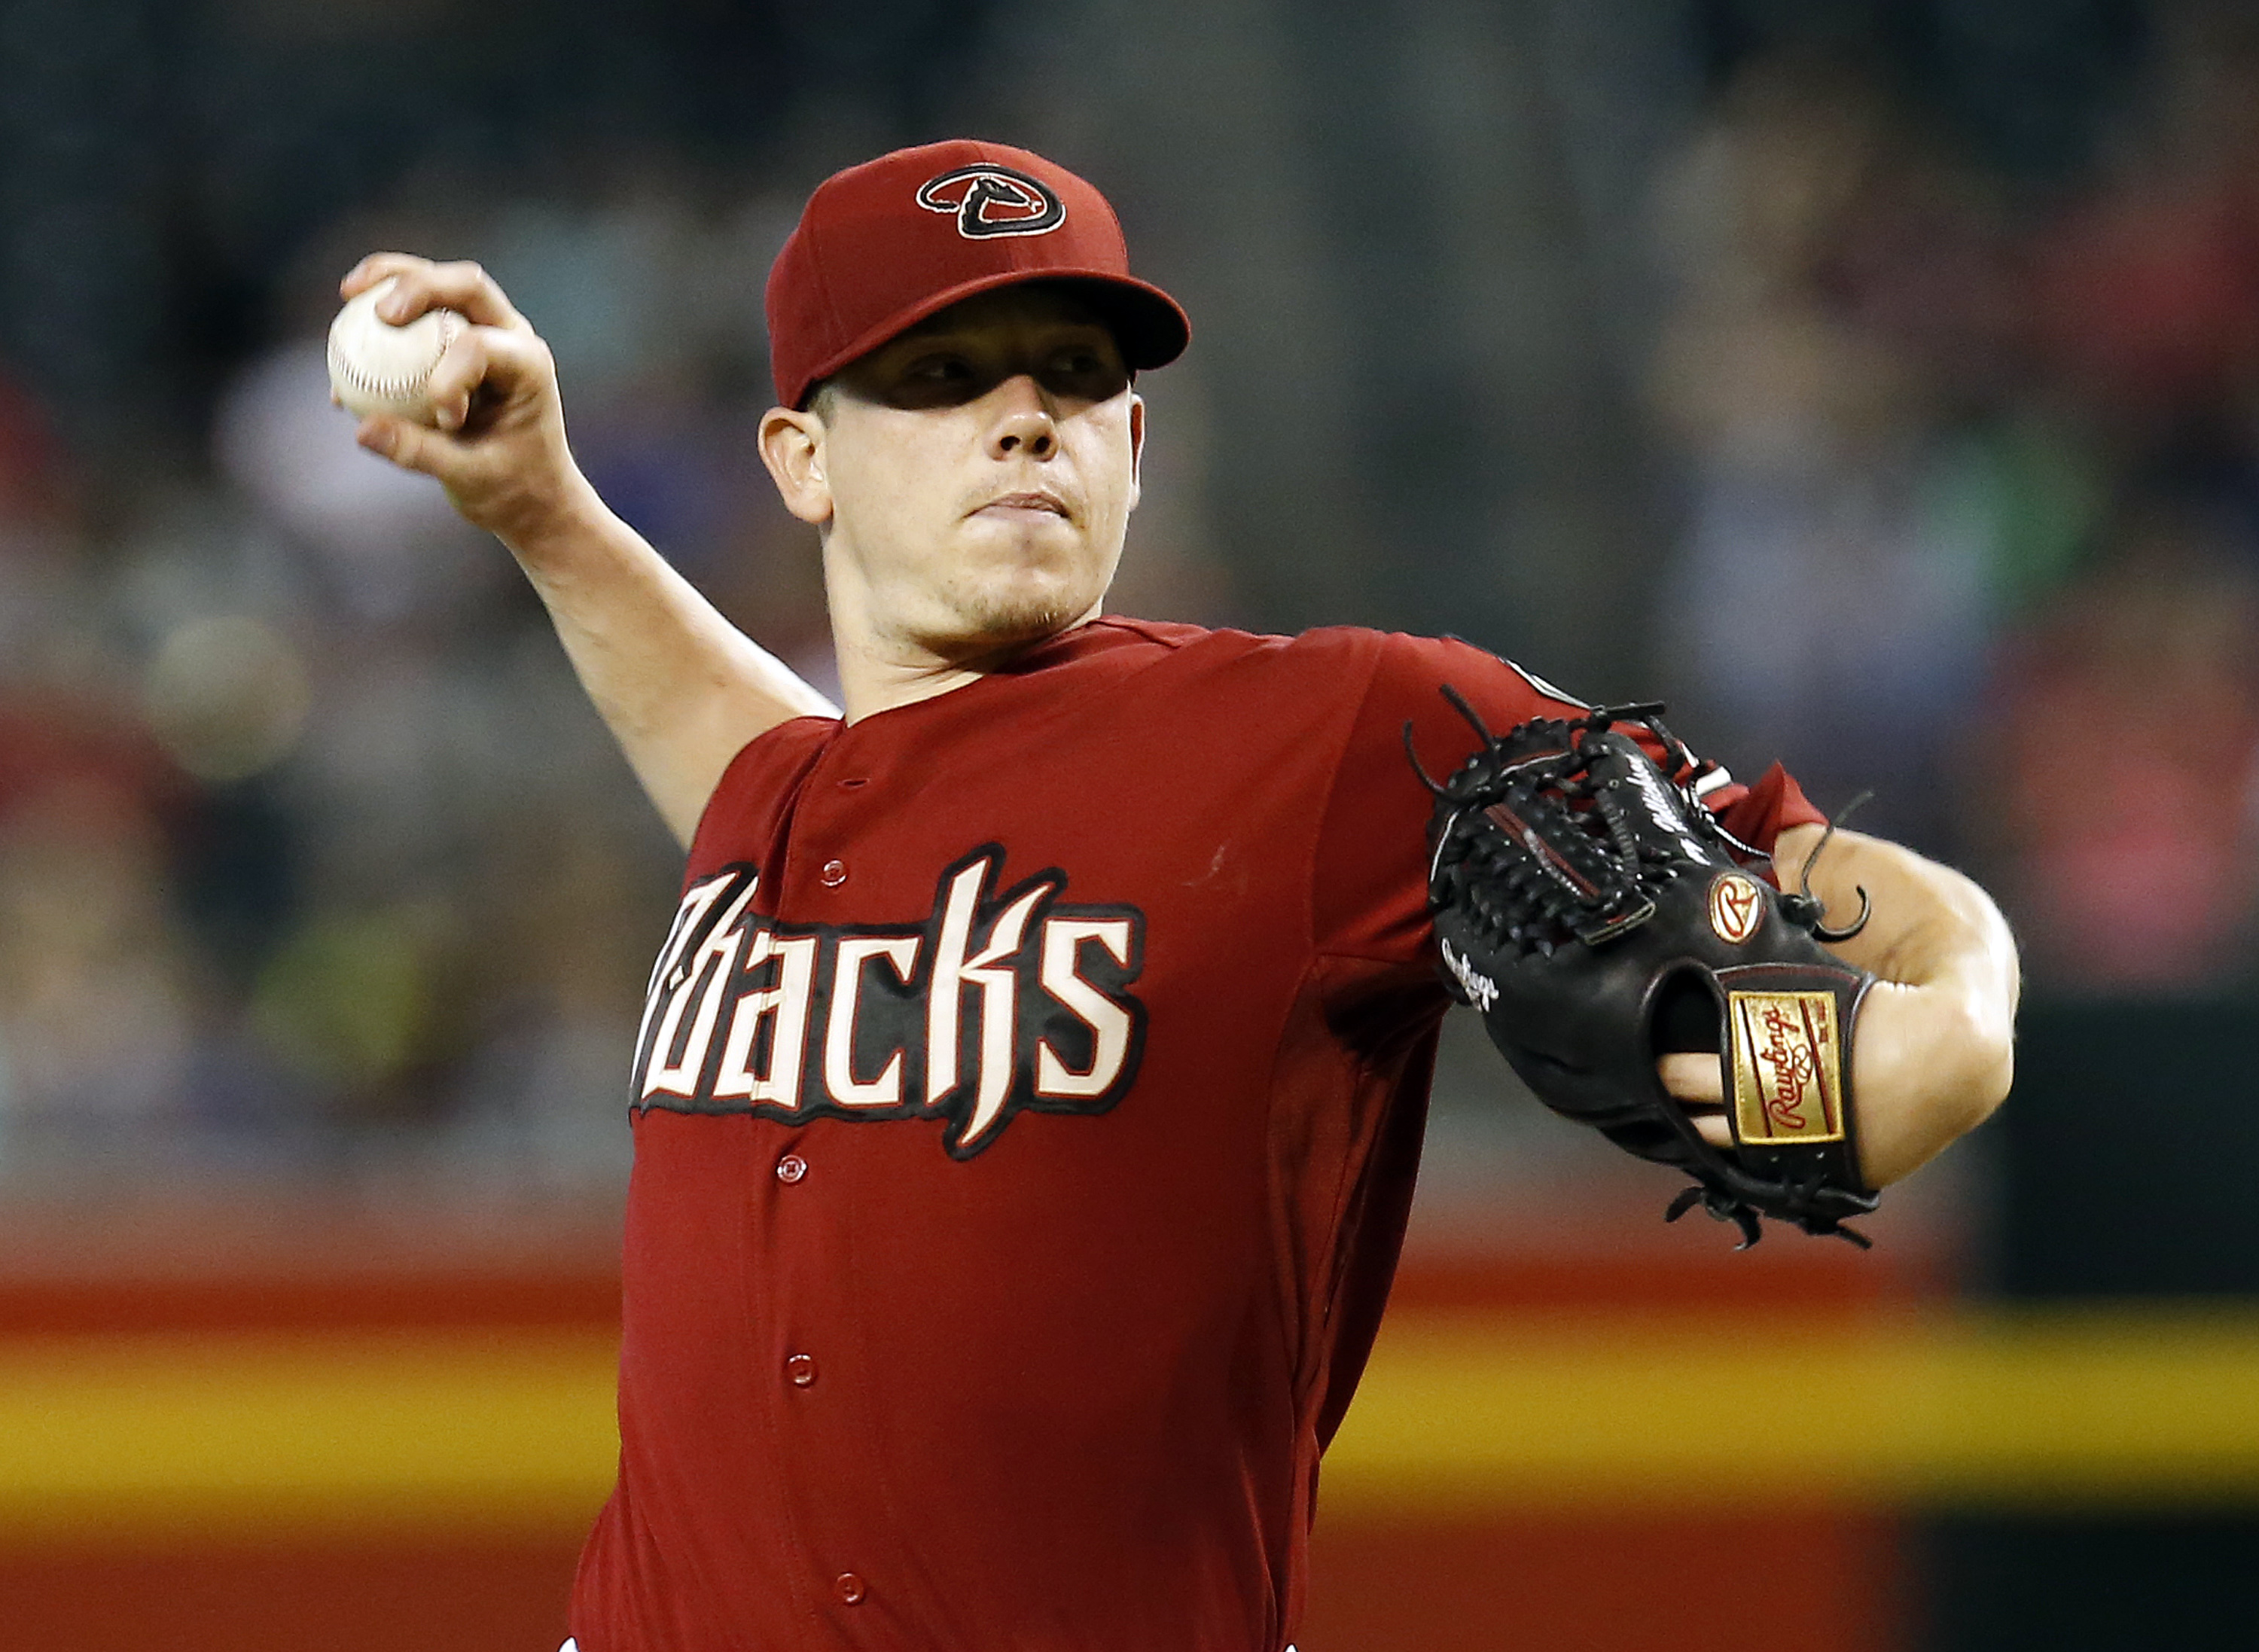 Arizona Diamondbacks pitcher Jeremy Hellickson throws in the first inning during a baseball game against the Milwaukee Brewers, Sunday, July 26, 2015, in Phoenix. (AP Photo/Rick Scuteri)